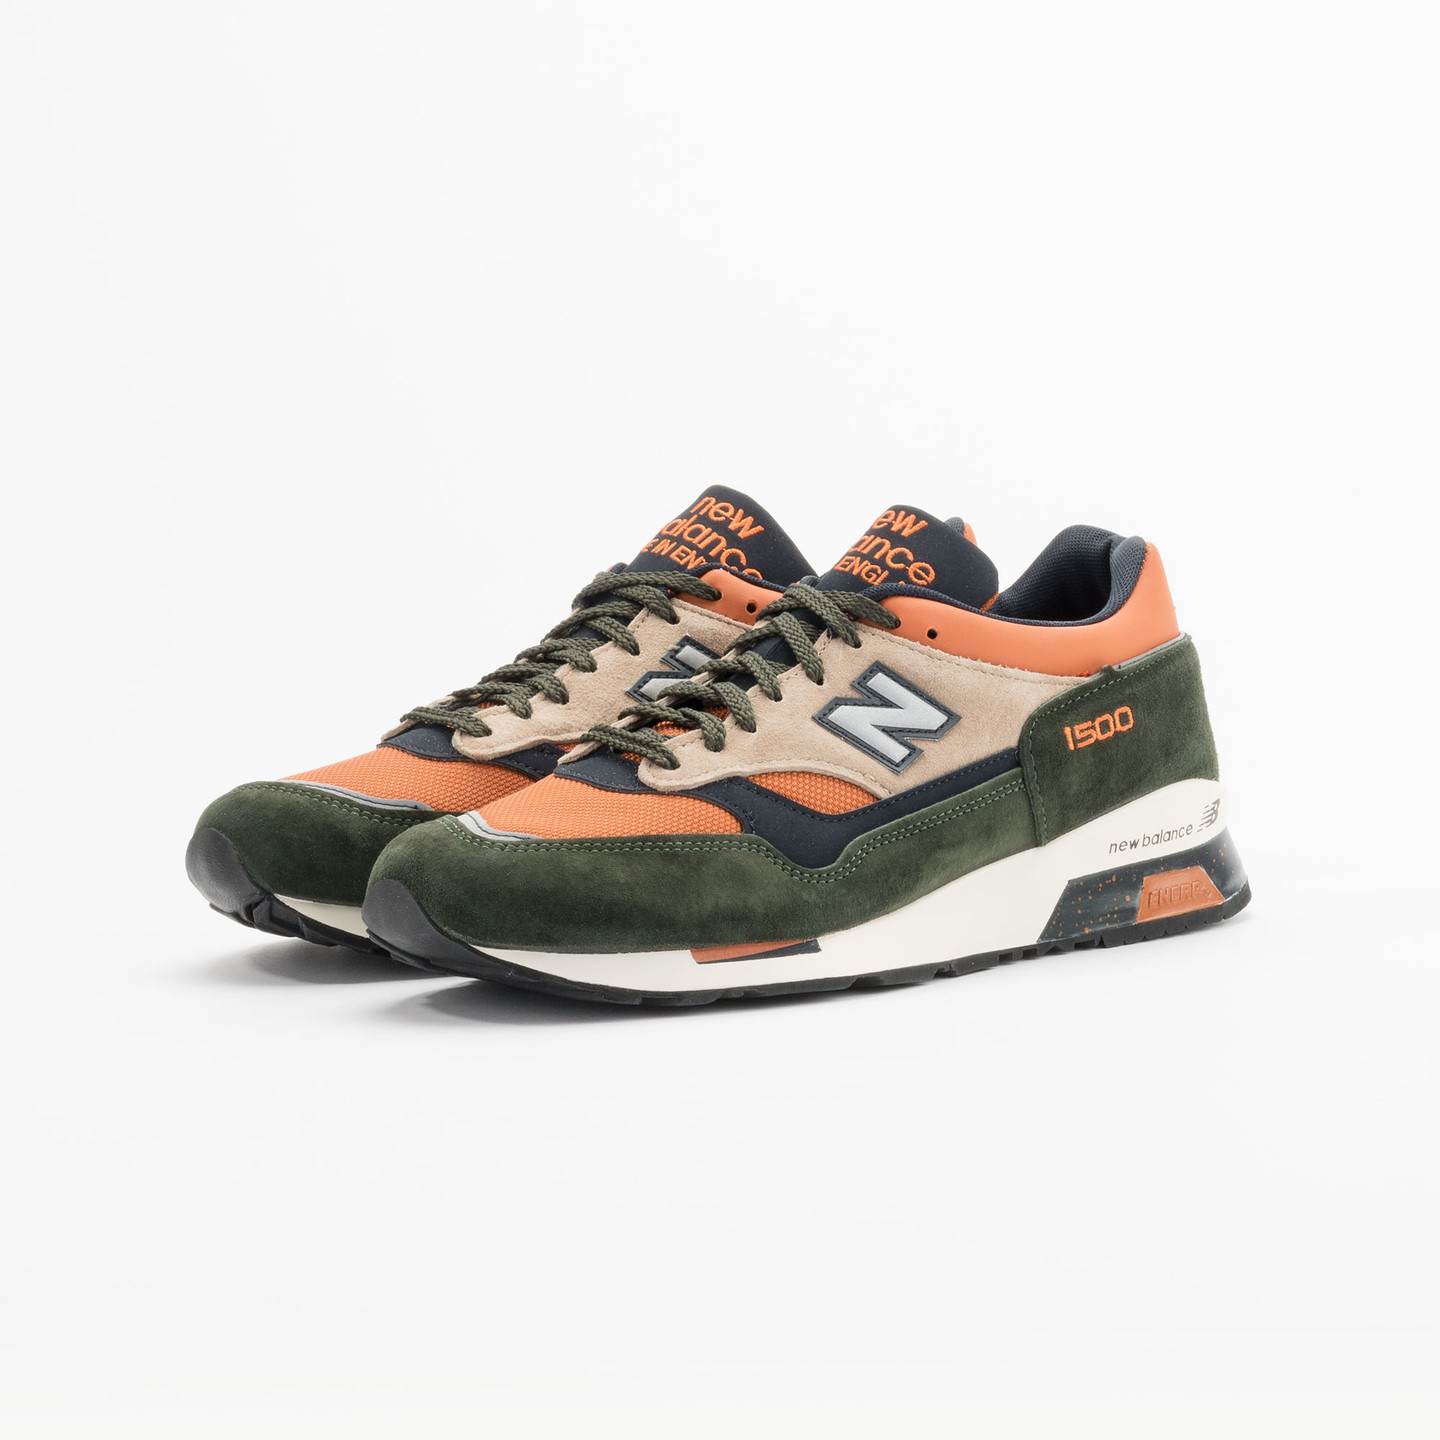 New Balance M1500 RO - Made in England Green / Orange M1500RO-42